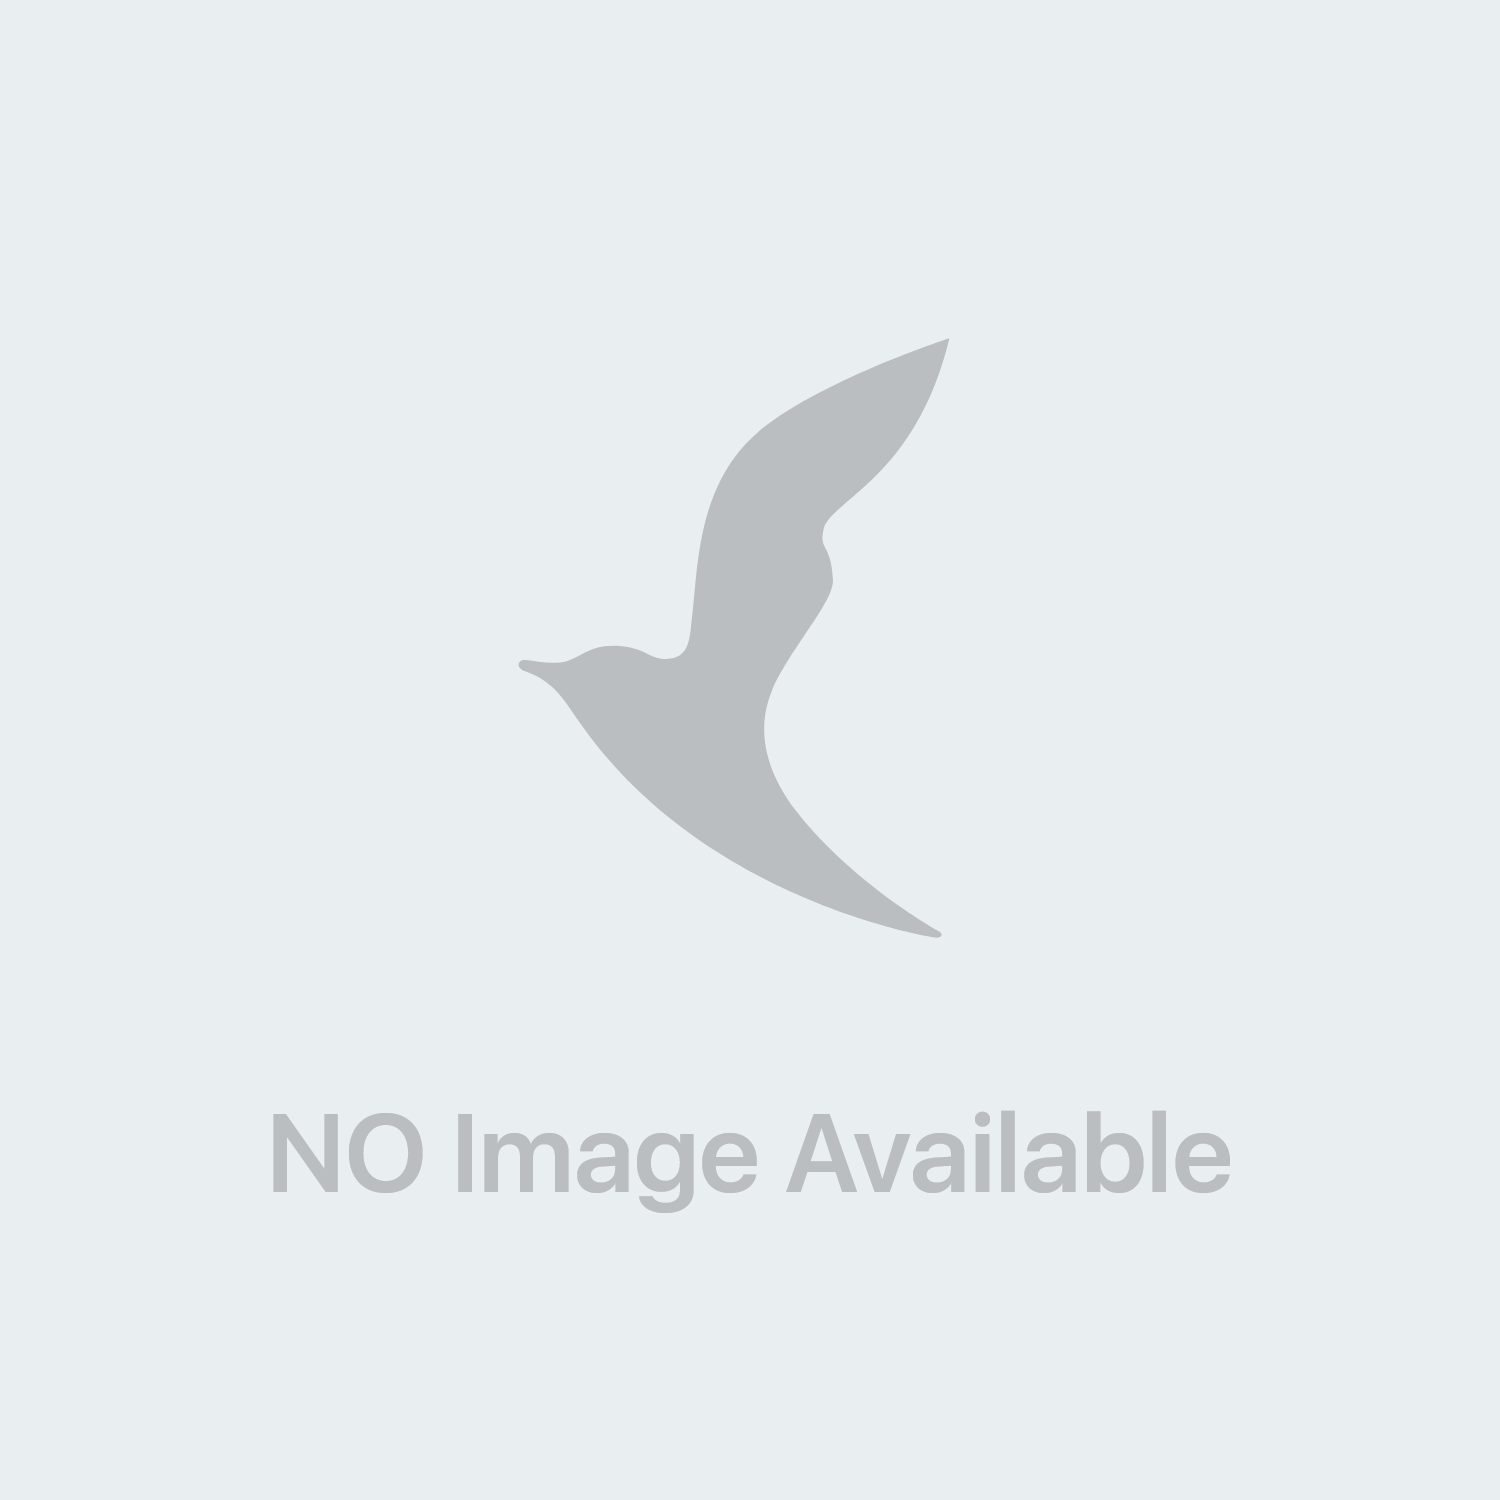 Image of Avène Eau Thermale Trattamento Deodorante Regolatore Roll-On 50 Ml